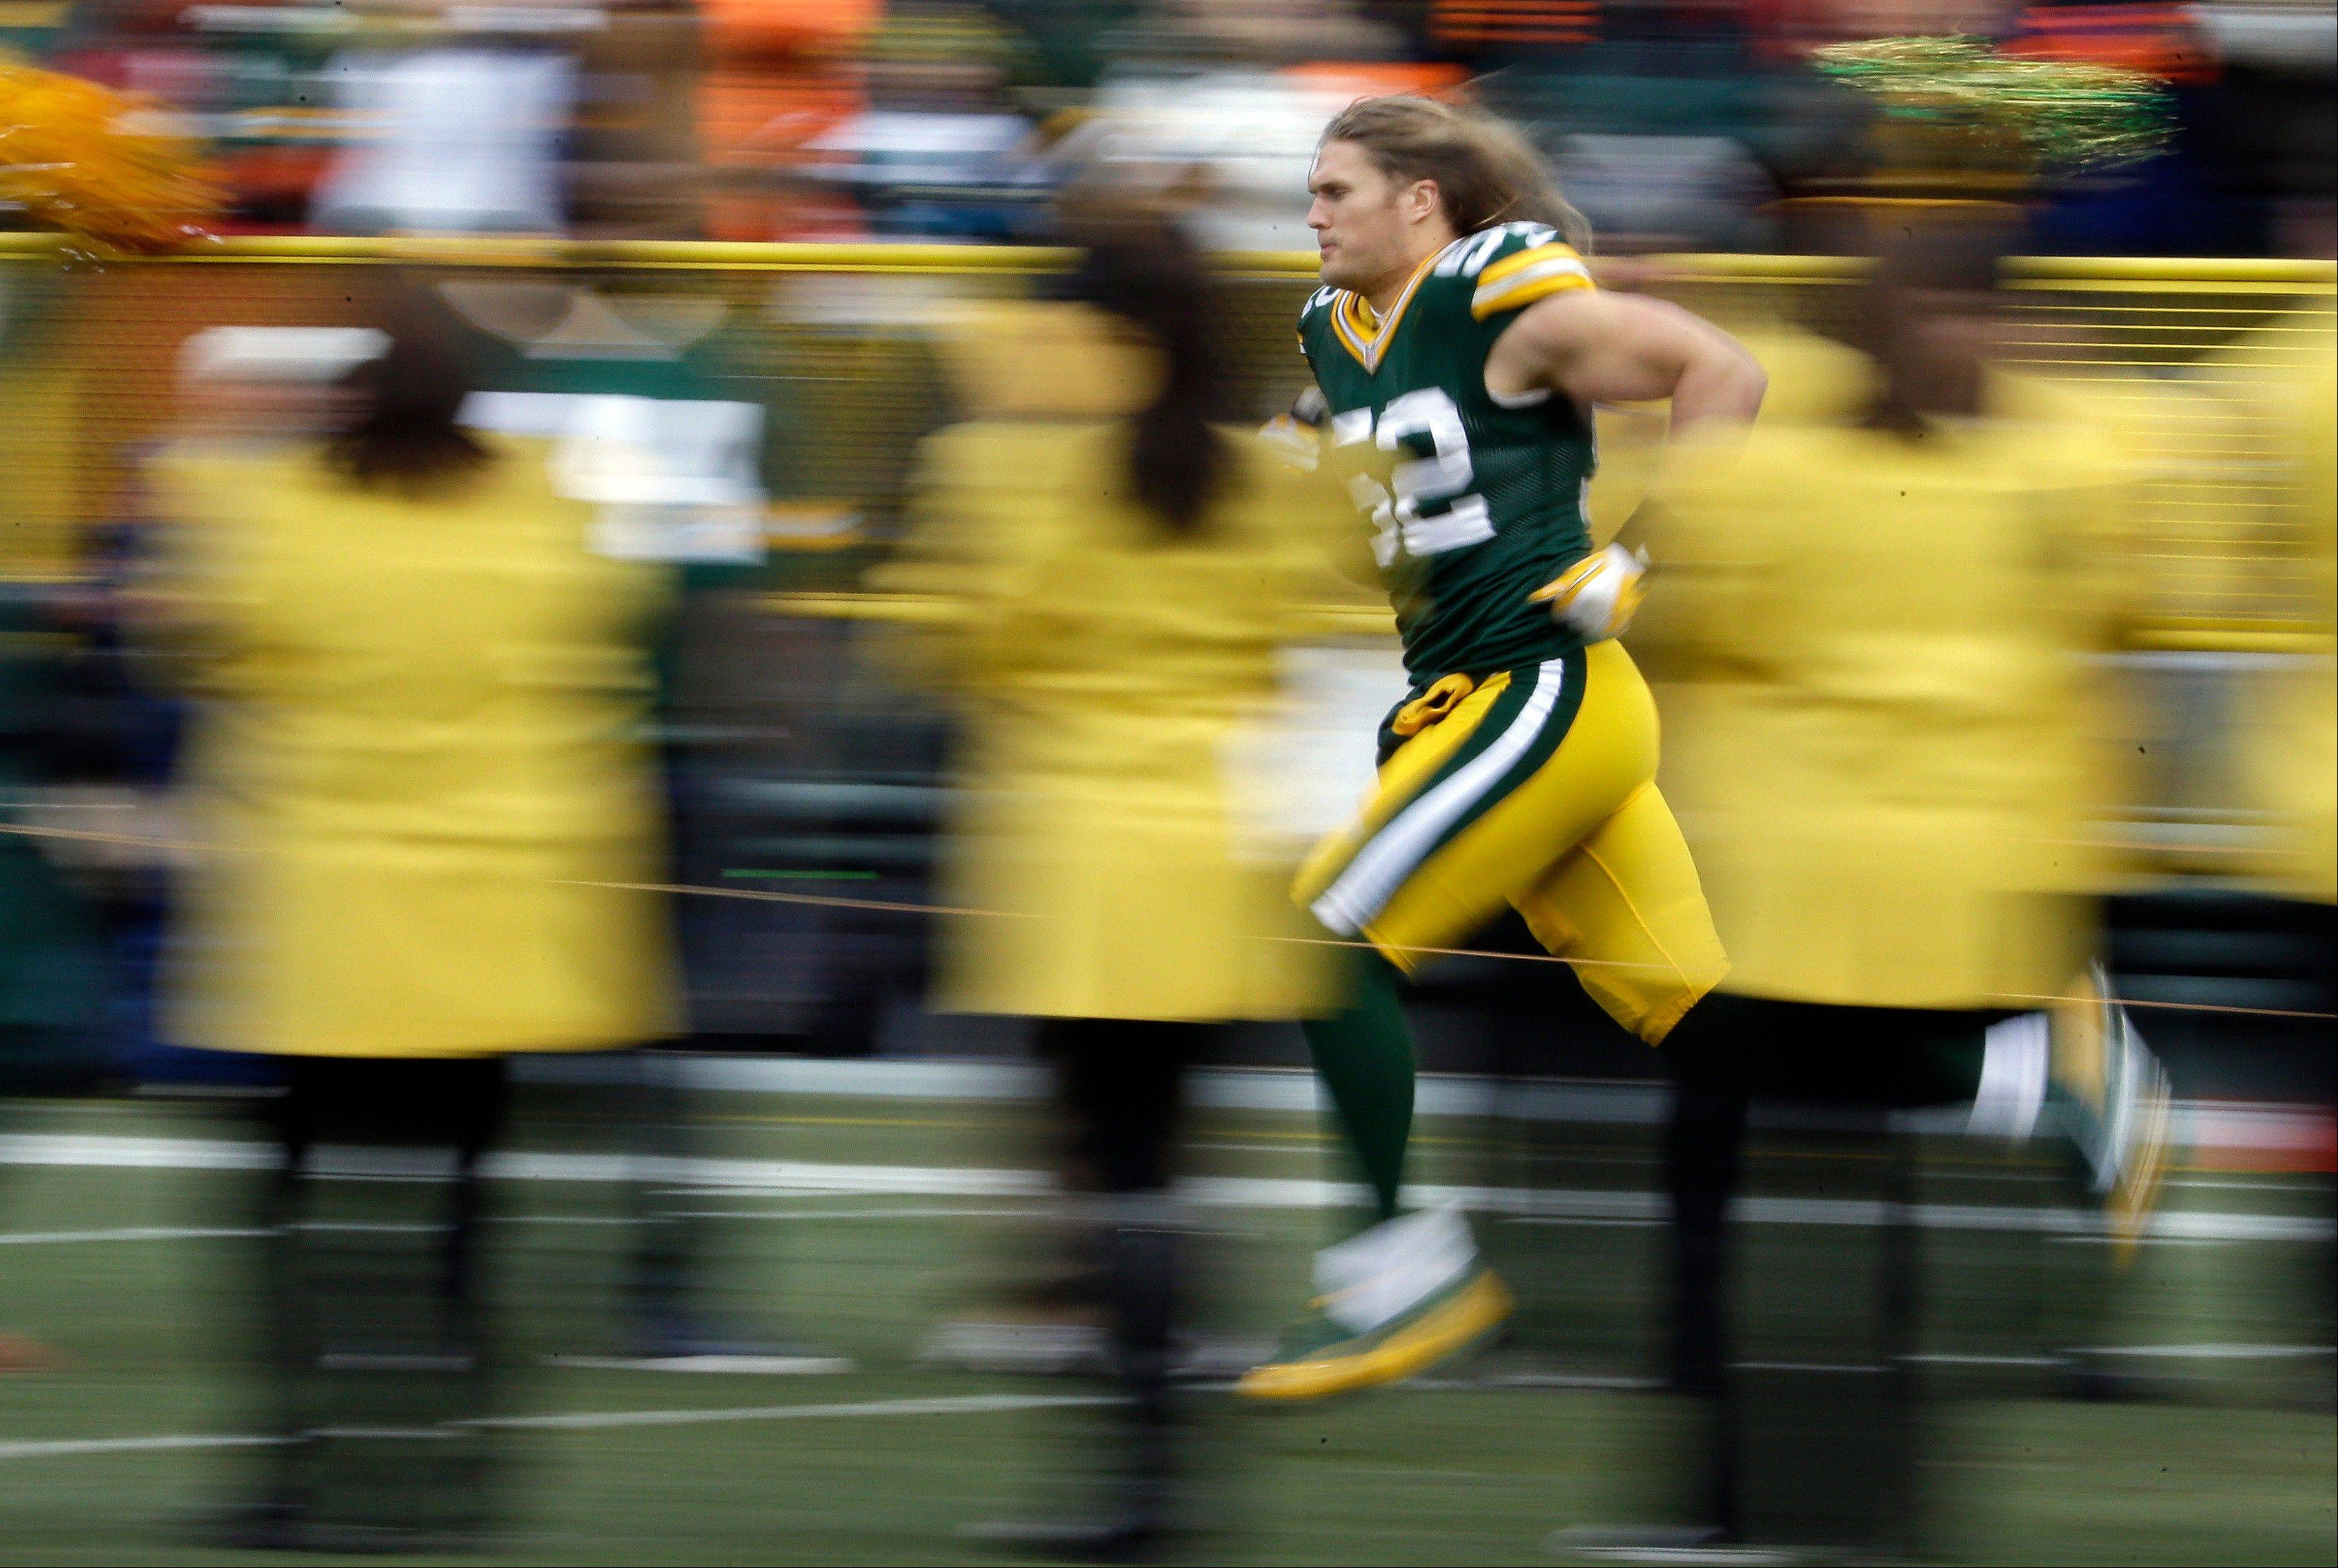 Green Bay Packers' Clay Matthews is introduced before the first half of an NFL football game against the Minnesota Vikings Sunday, Nov. 24, 2013, in Green Bay, Wis.